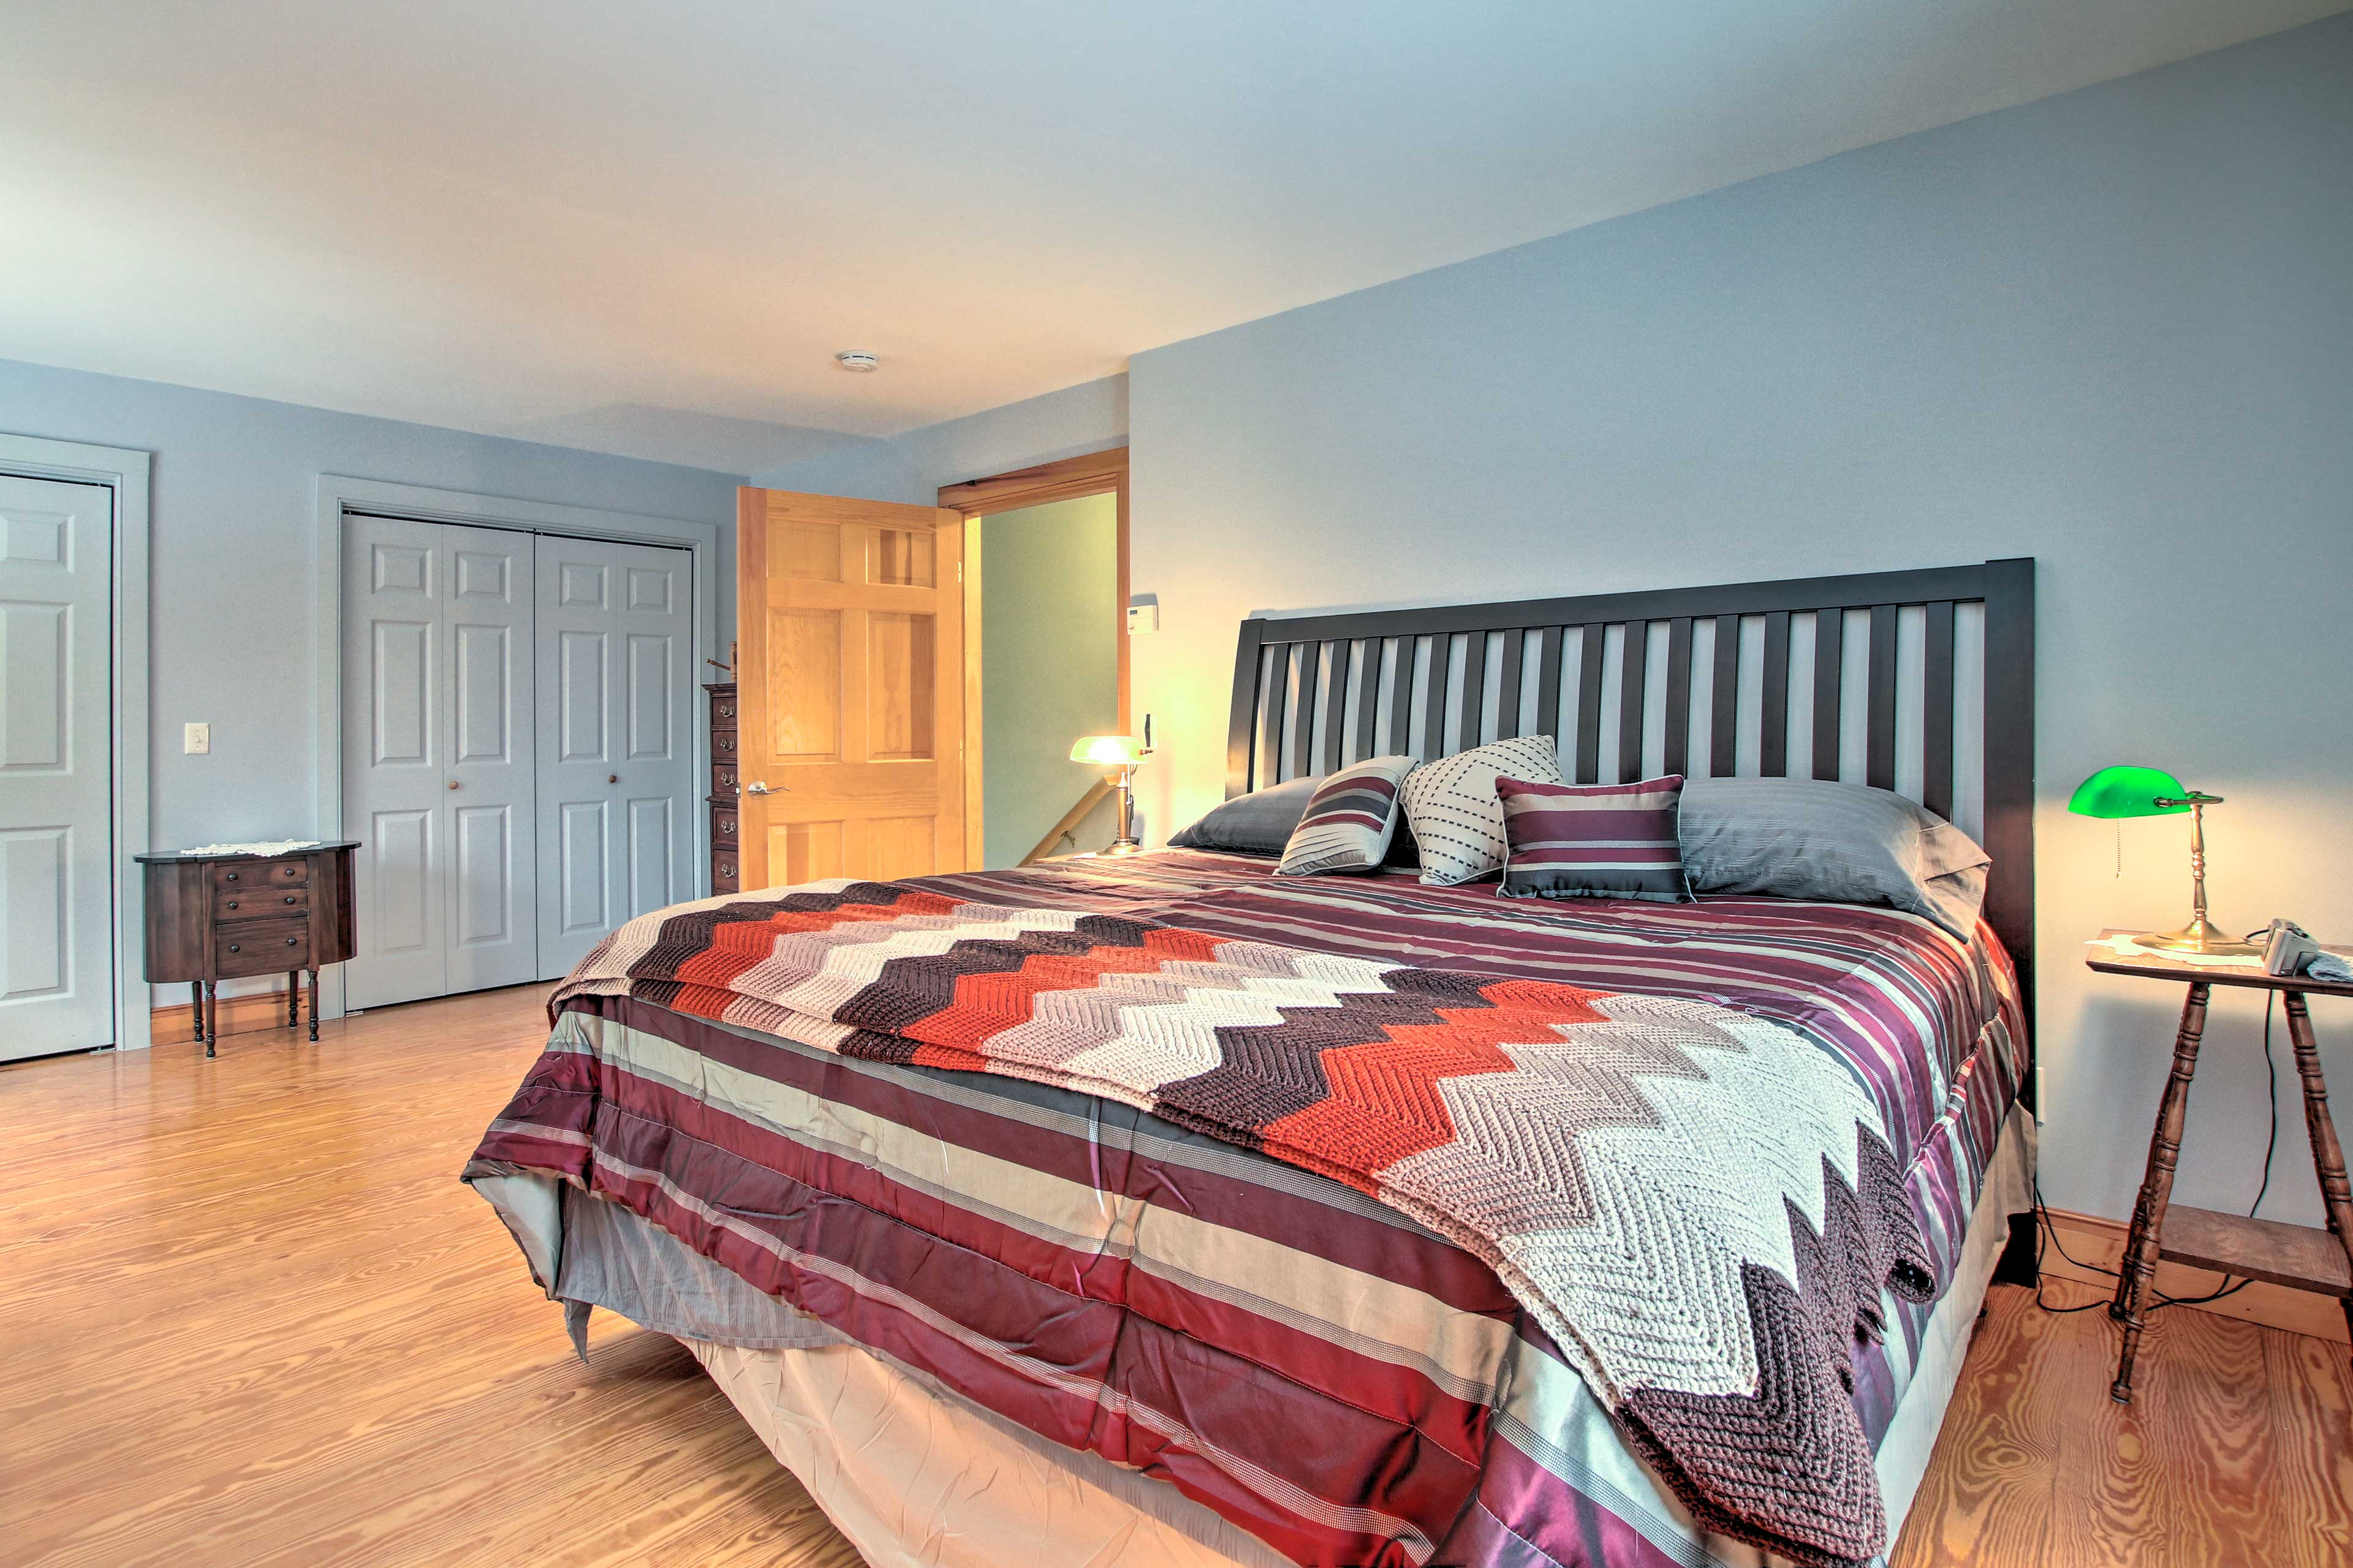 Two lucky guests can claim the king bed upstairs!